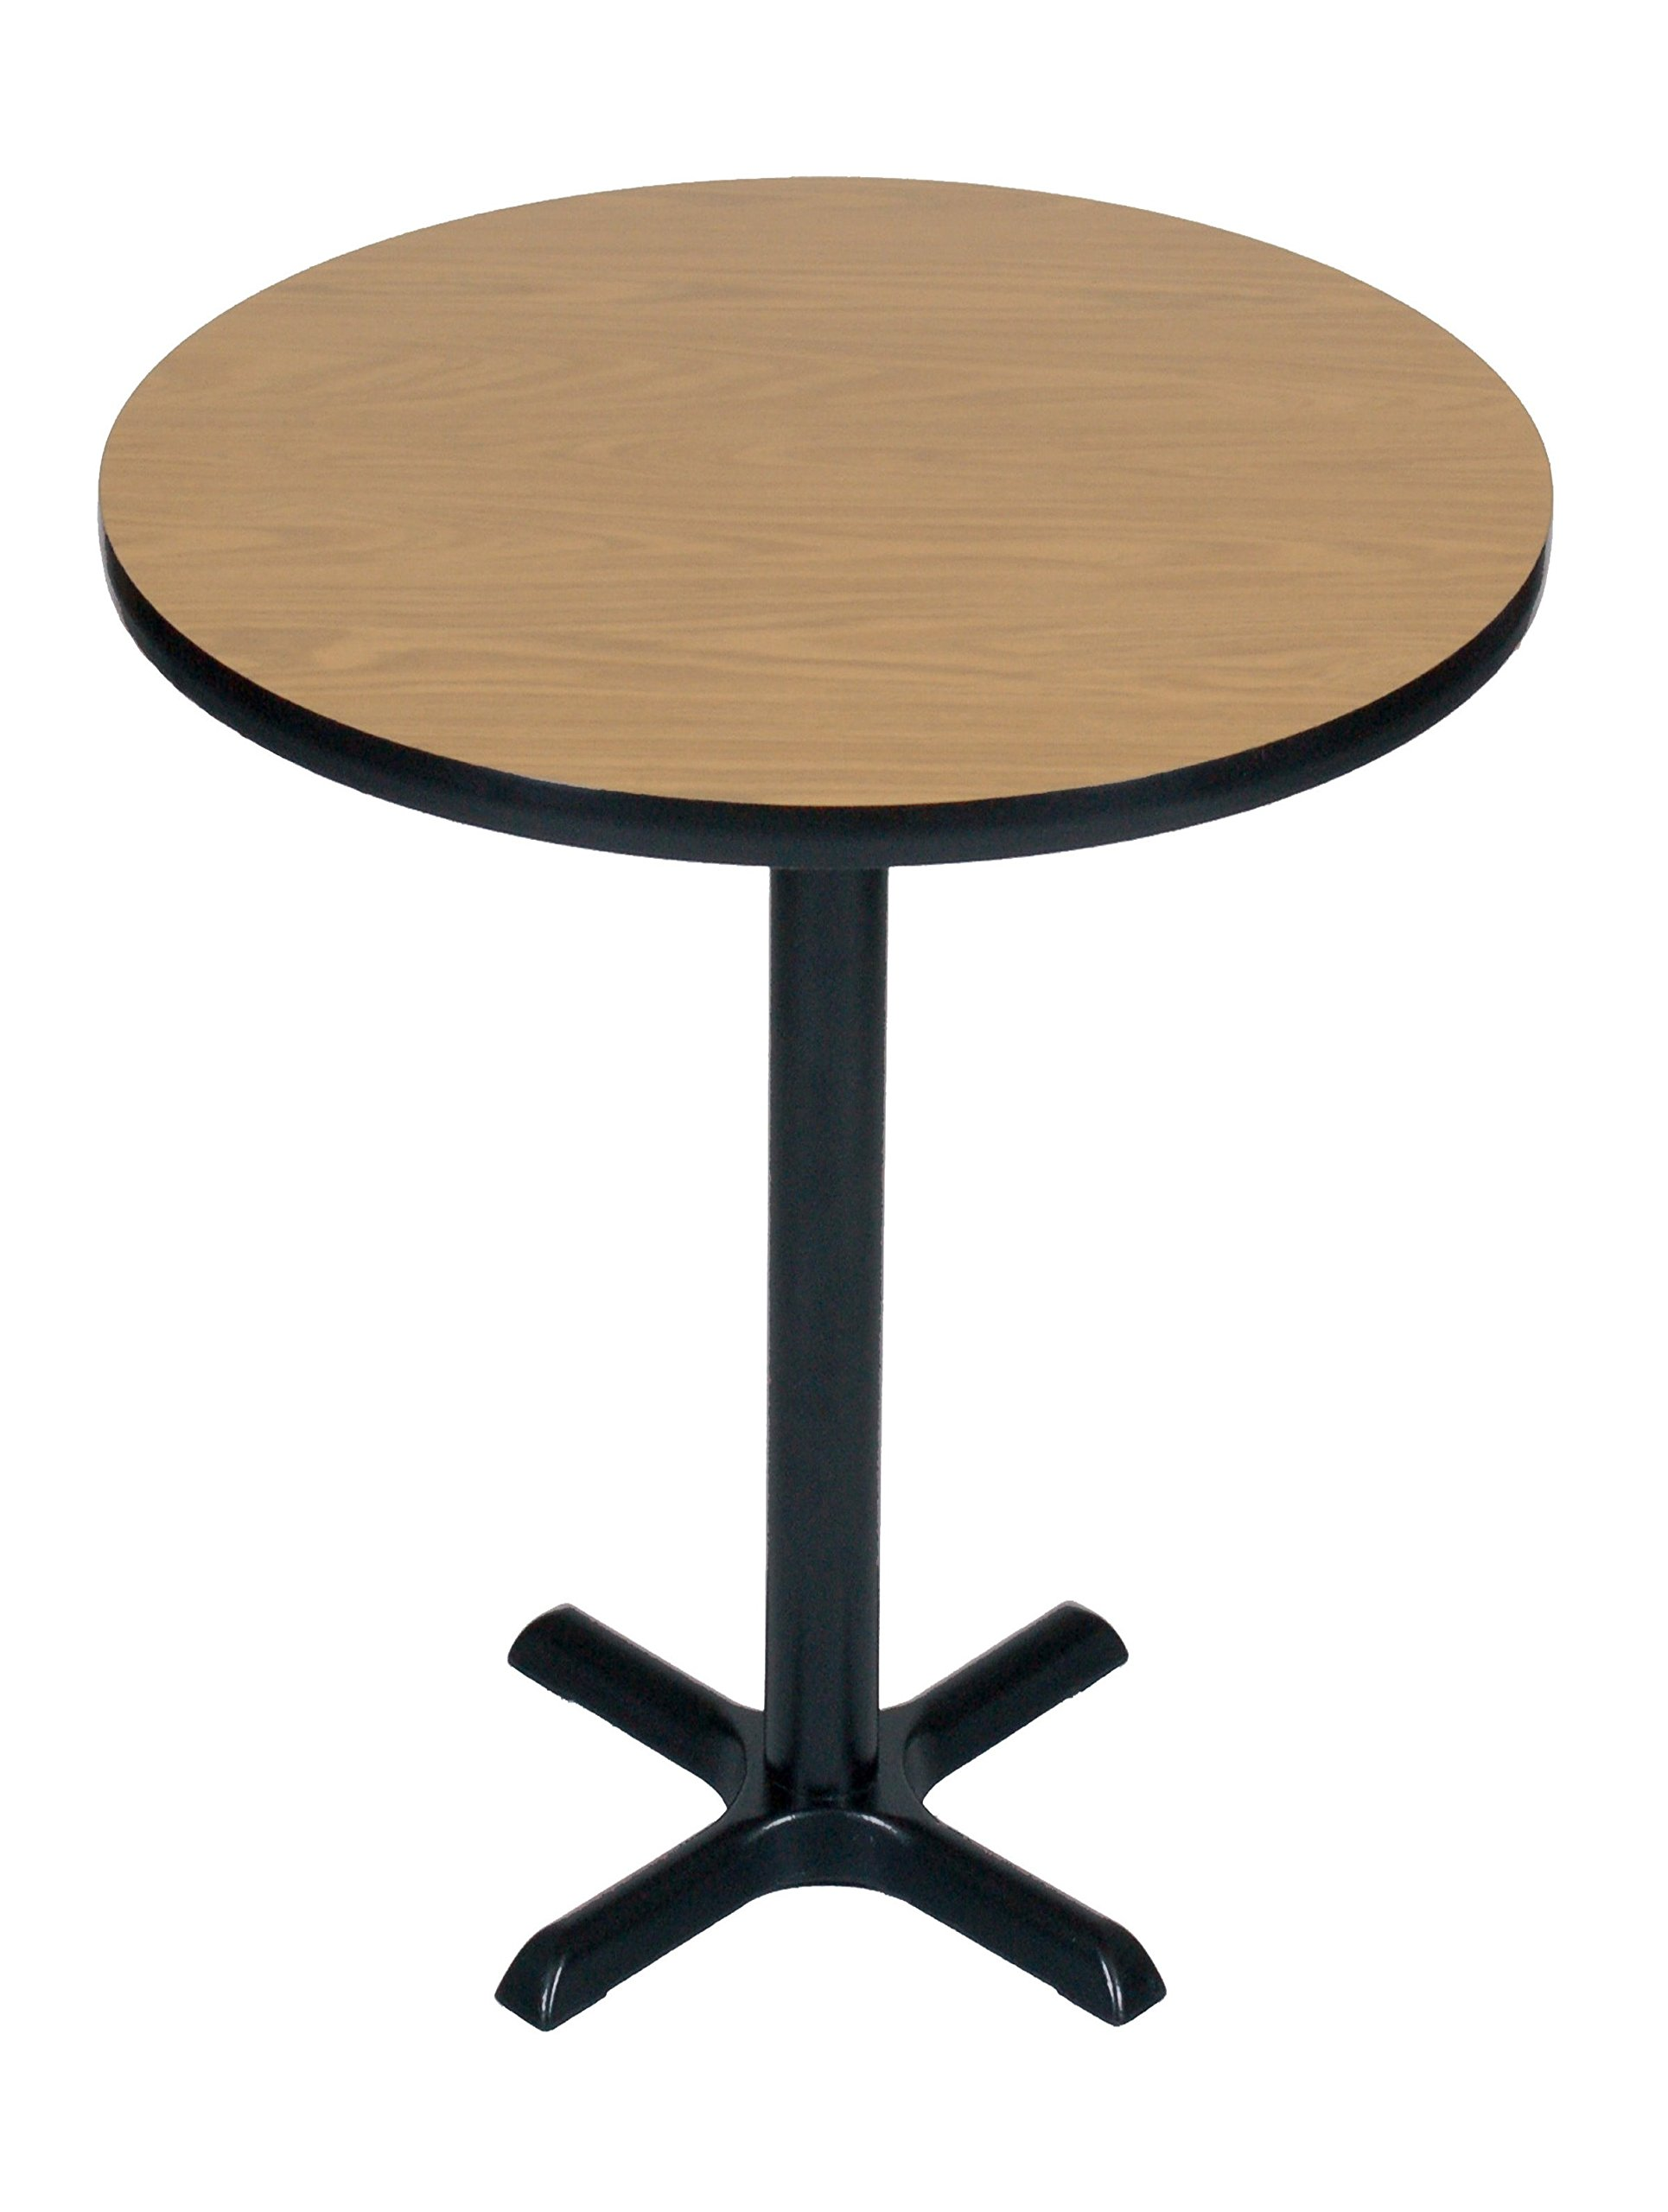 Correll BXB24R-06 -24'' Round 42'' Standing / Barstool Height , Café, & Break Room Table, Medium Oak Top & Black Base, Made in the USA by Correll